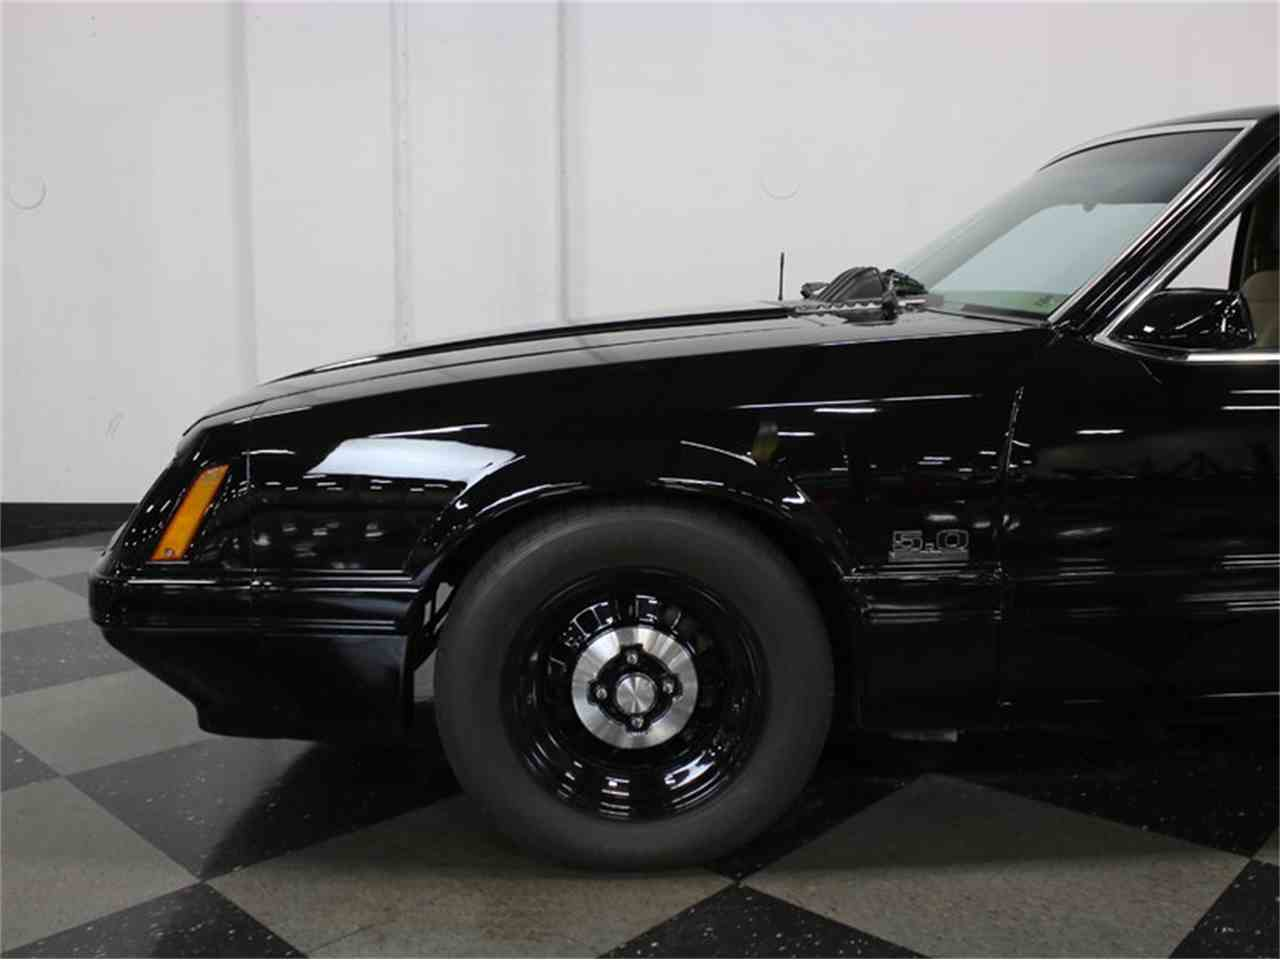 Large Picture of 1986 Mustang SSP Interceptor - $24,995.00 Offered by Streetside Classics - Dallas / Fort Worth - JZNT